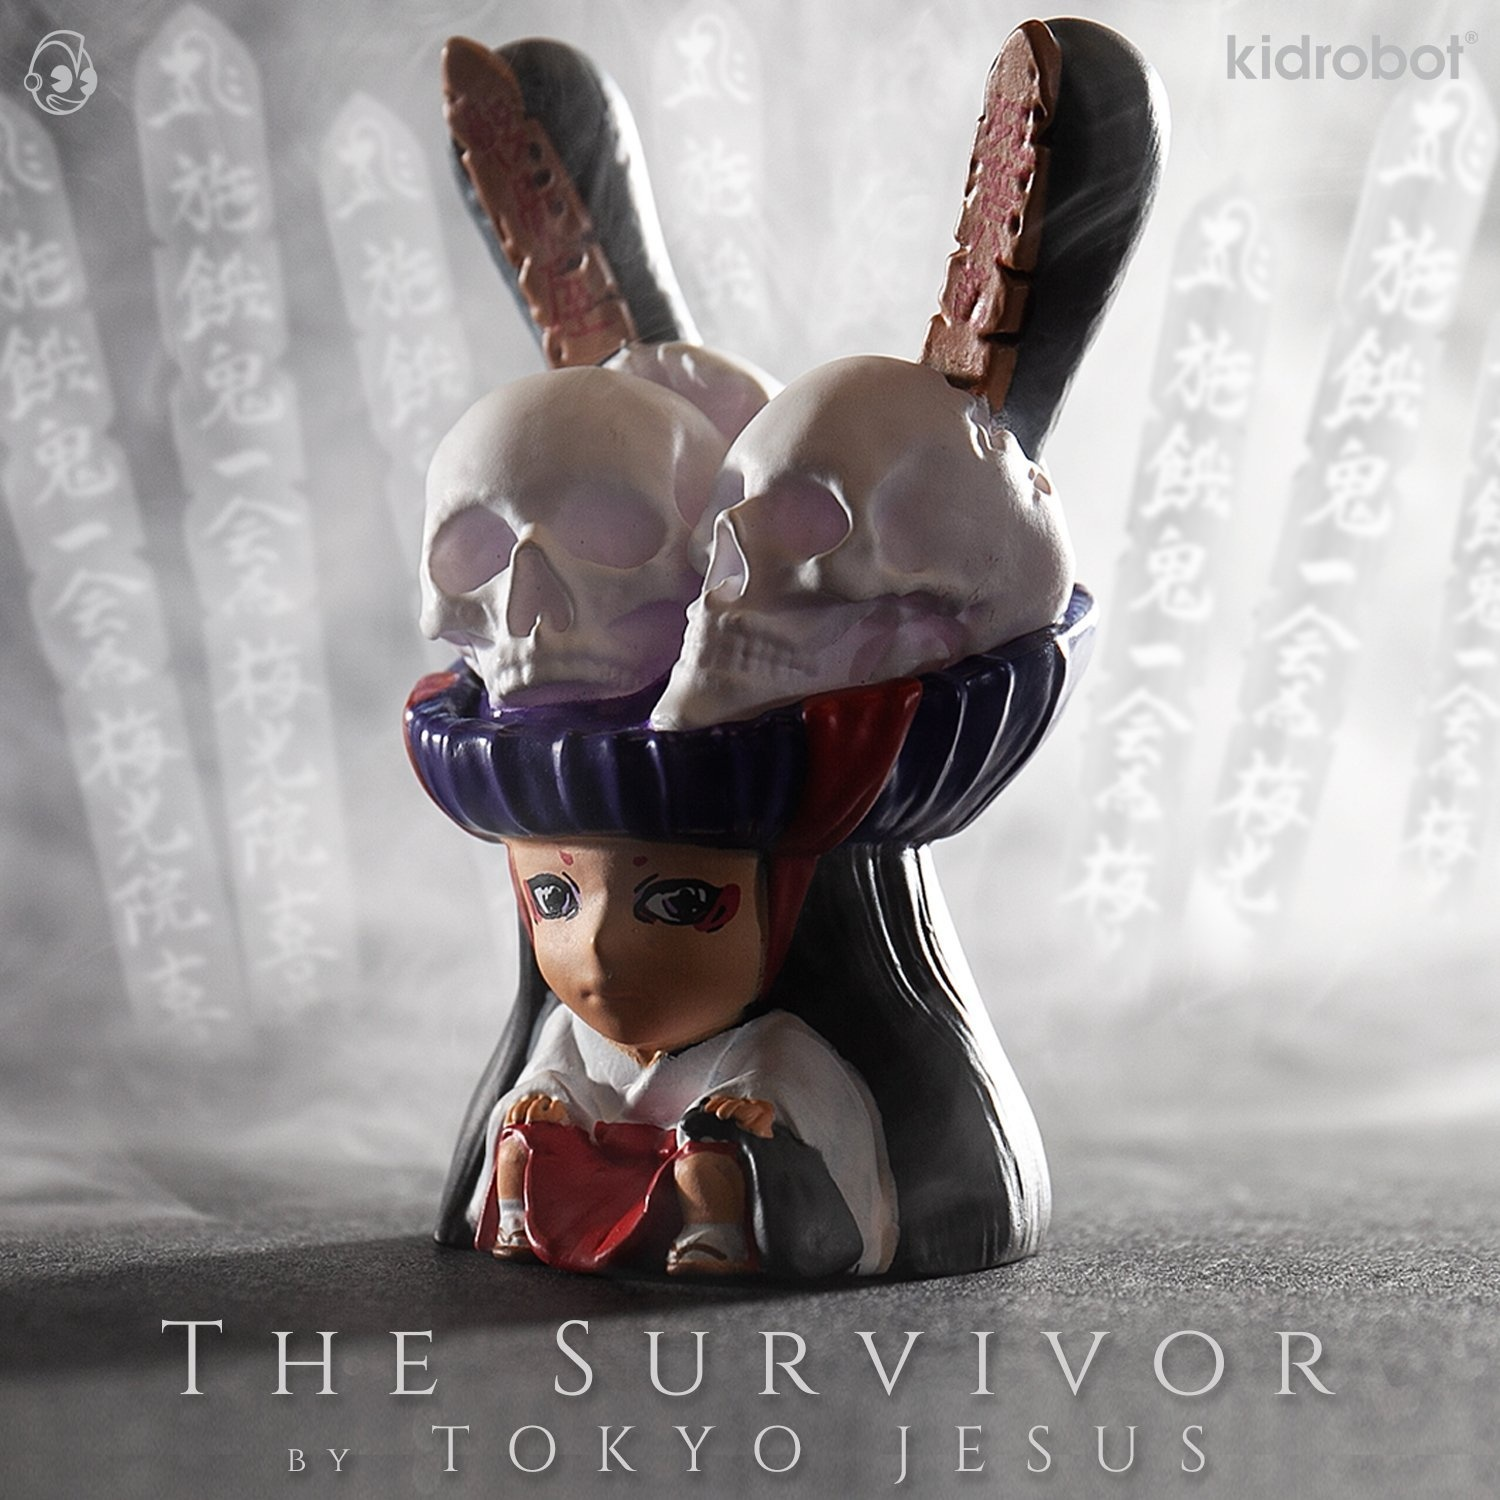 Kidrobot Arcane Divination Lost Cards The Survivor by Tokyo Jesus